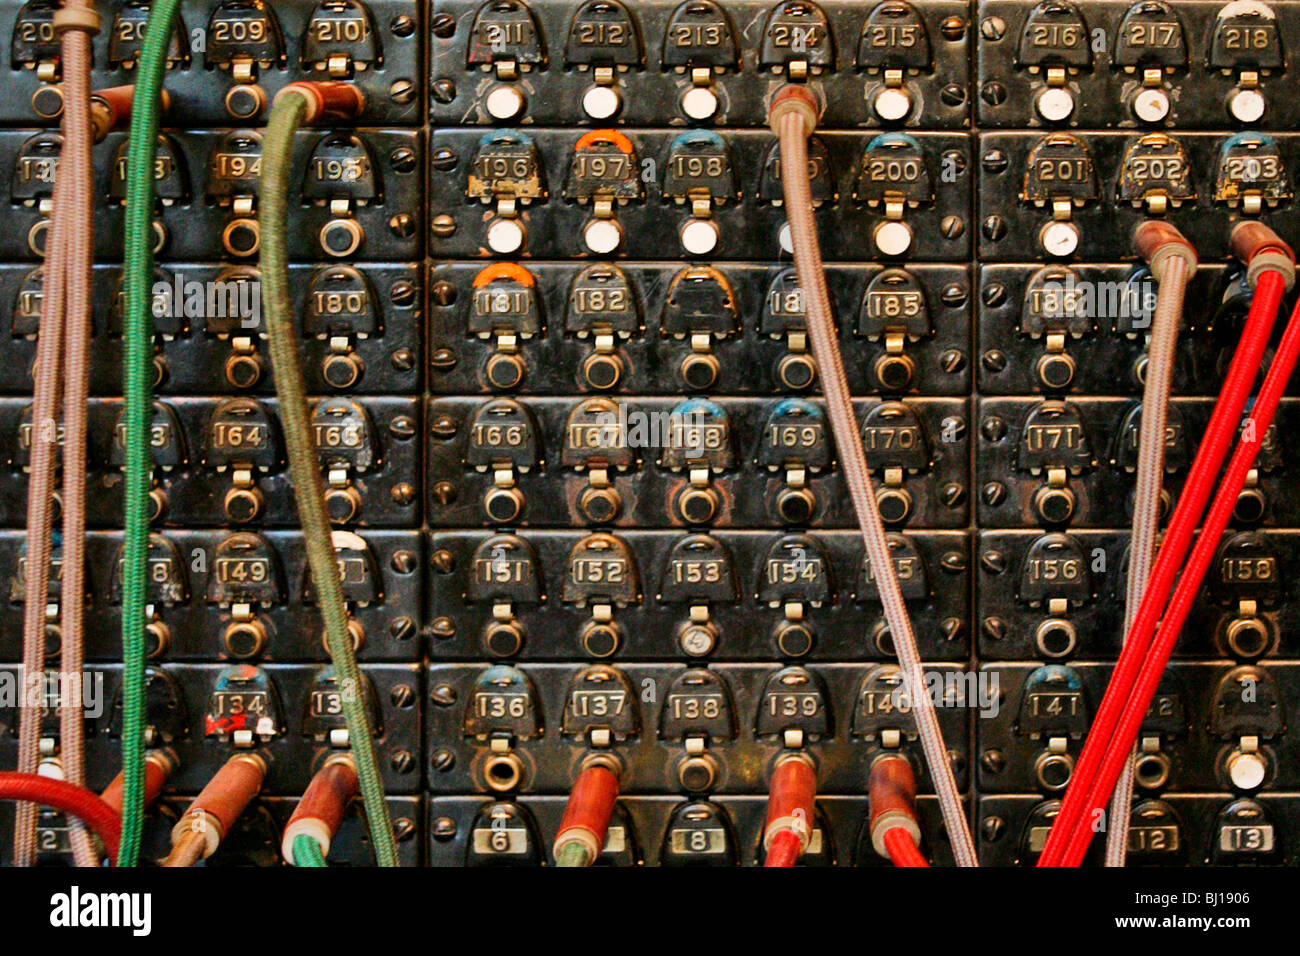 Old Telephone Switchboard - Stock Image